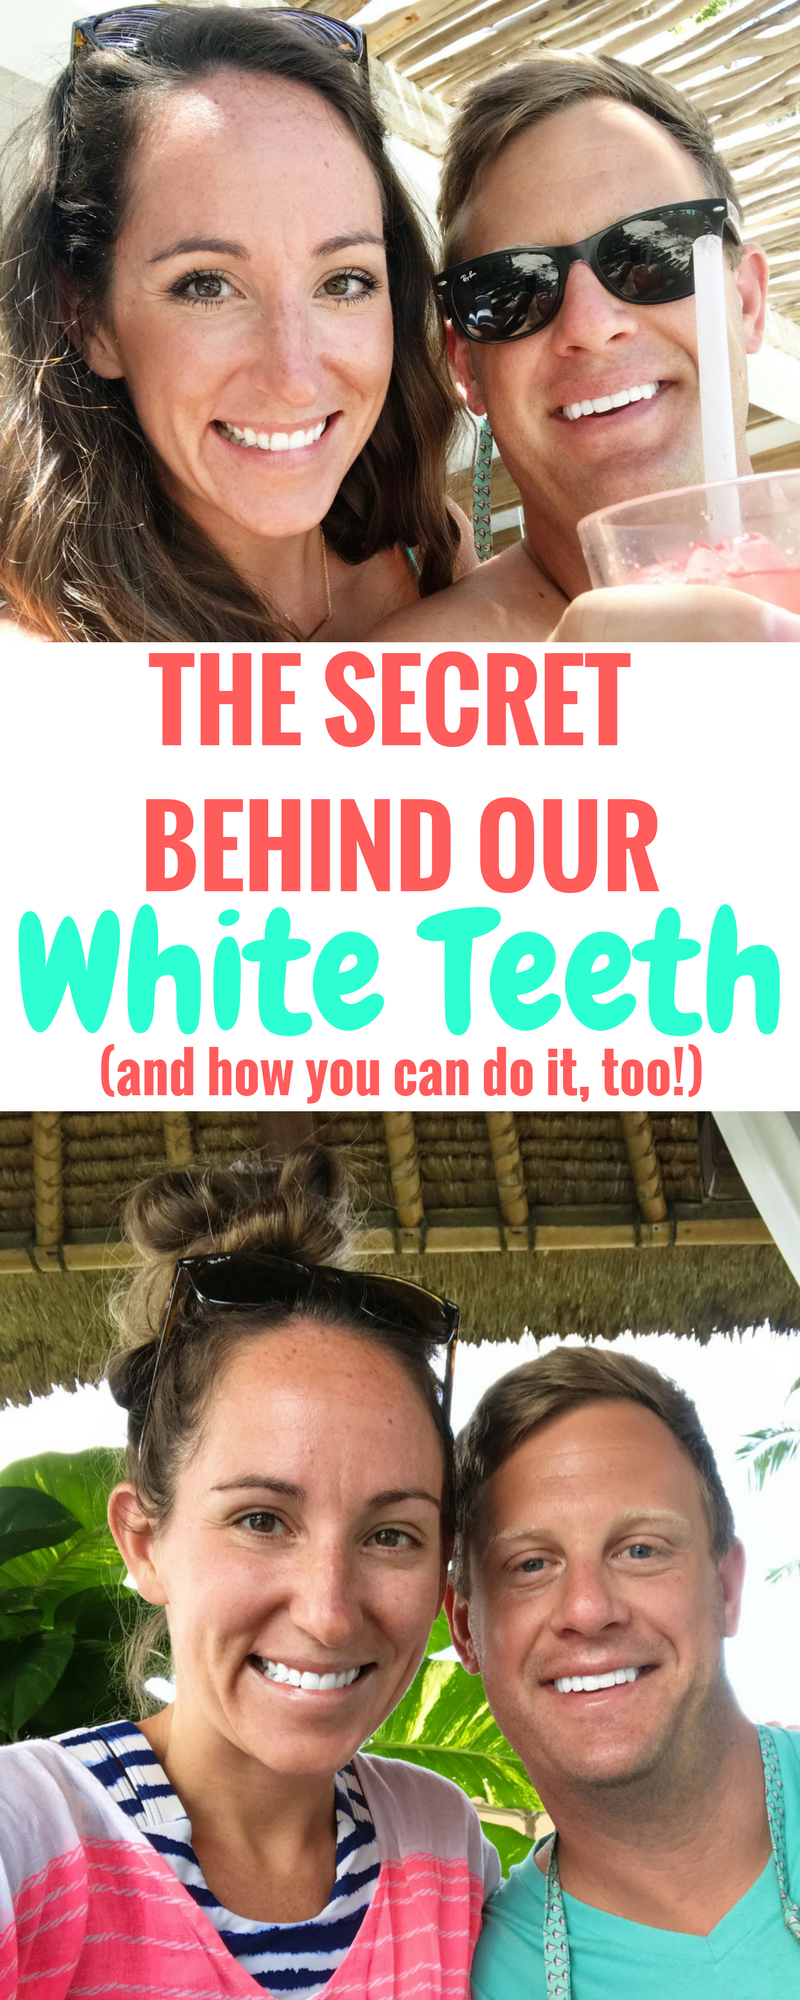 How I Whiten My Teeth - Beauty Hack - Communikait - Whiten Teeth At Home  - DIY Teeth Whitening - Cheap Teeth Whitening - Easy Beauty Hack